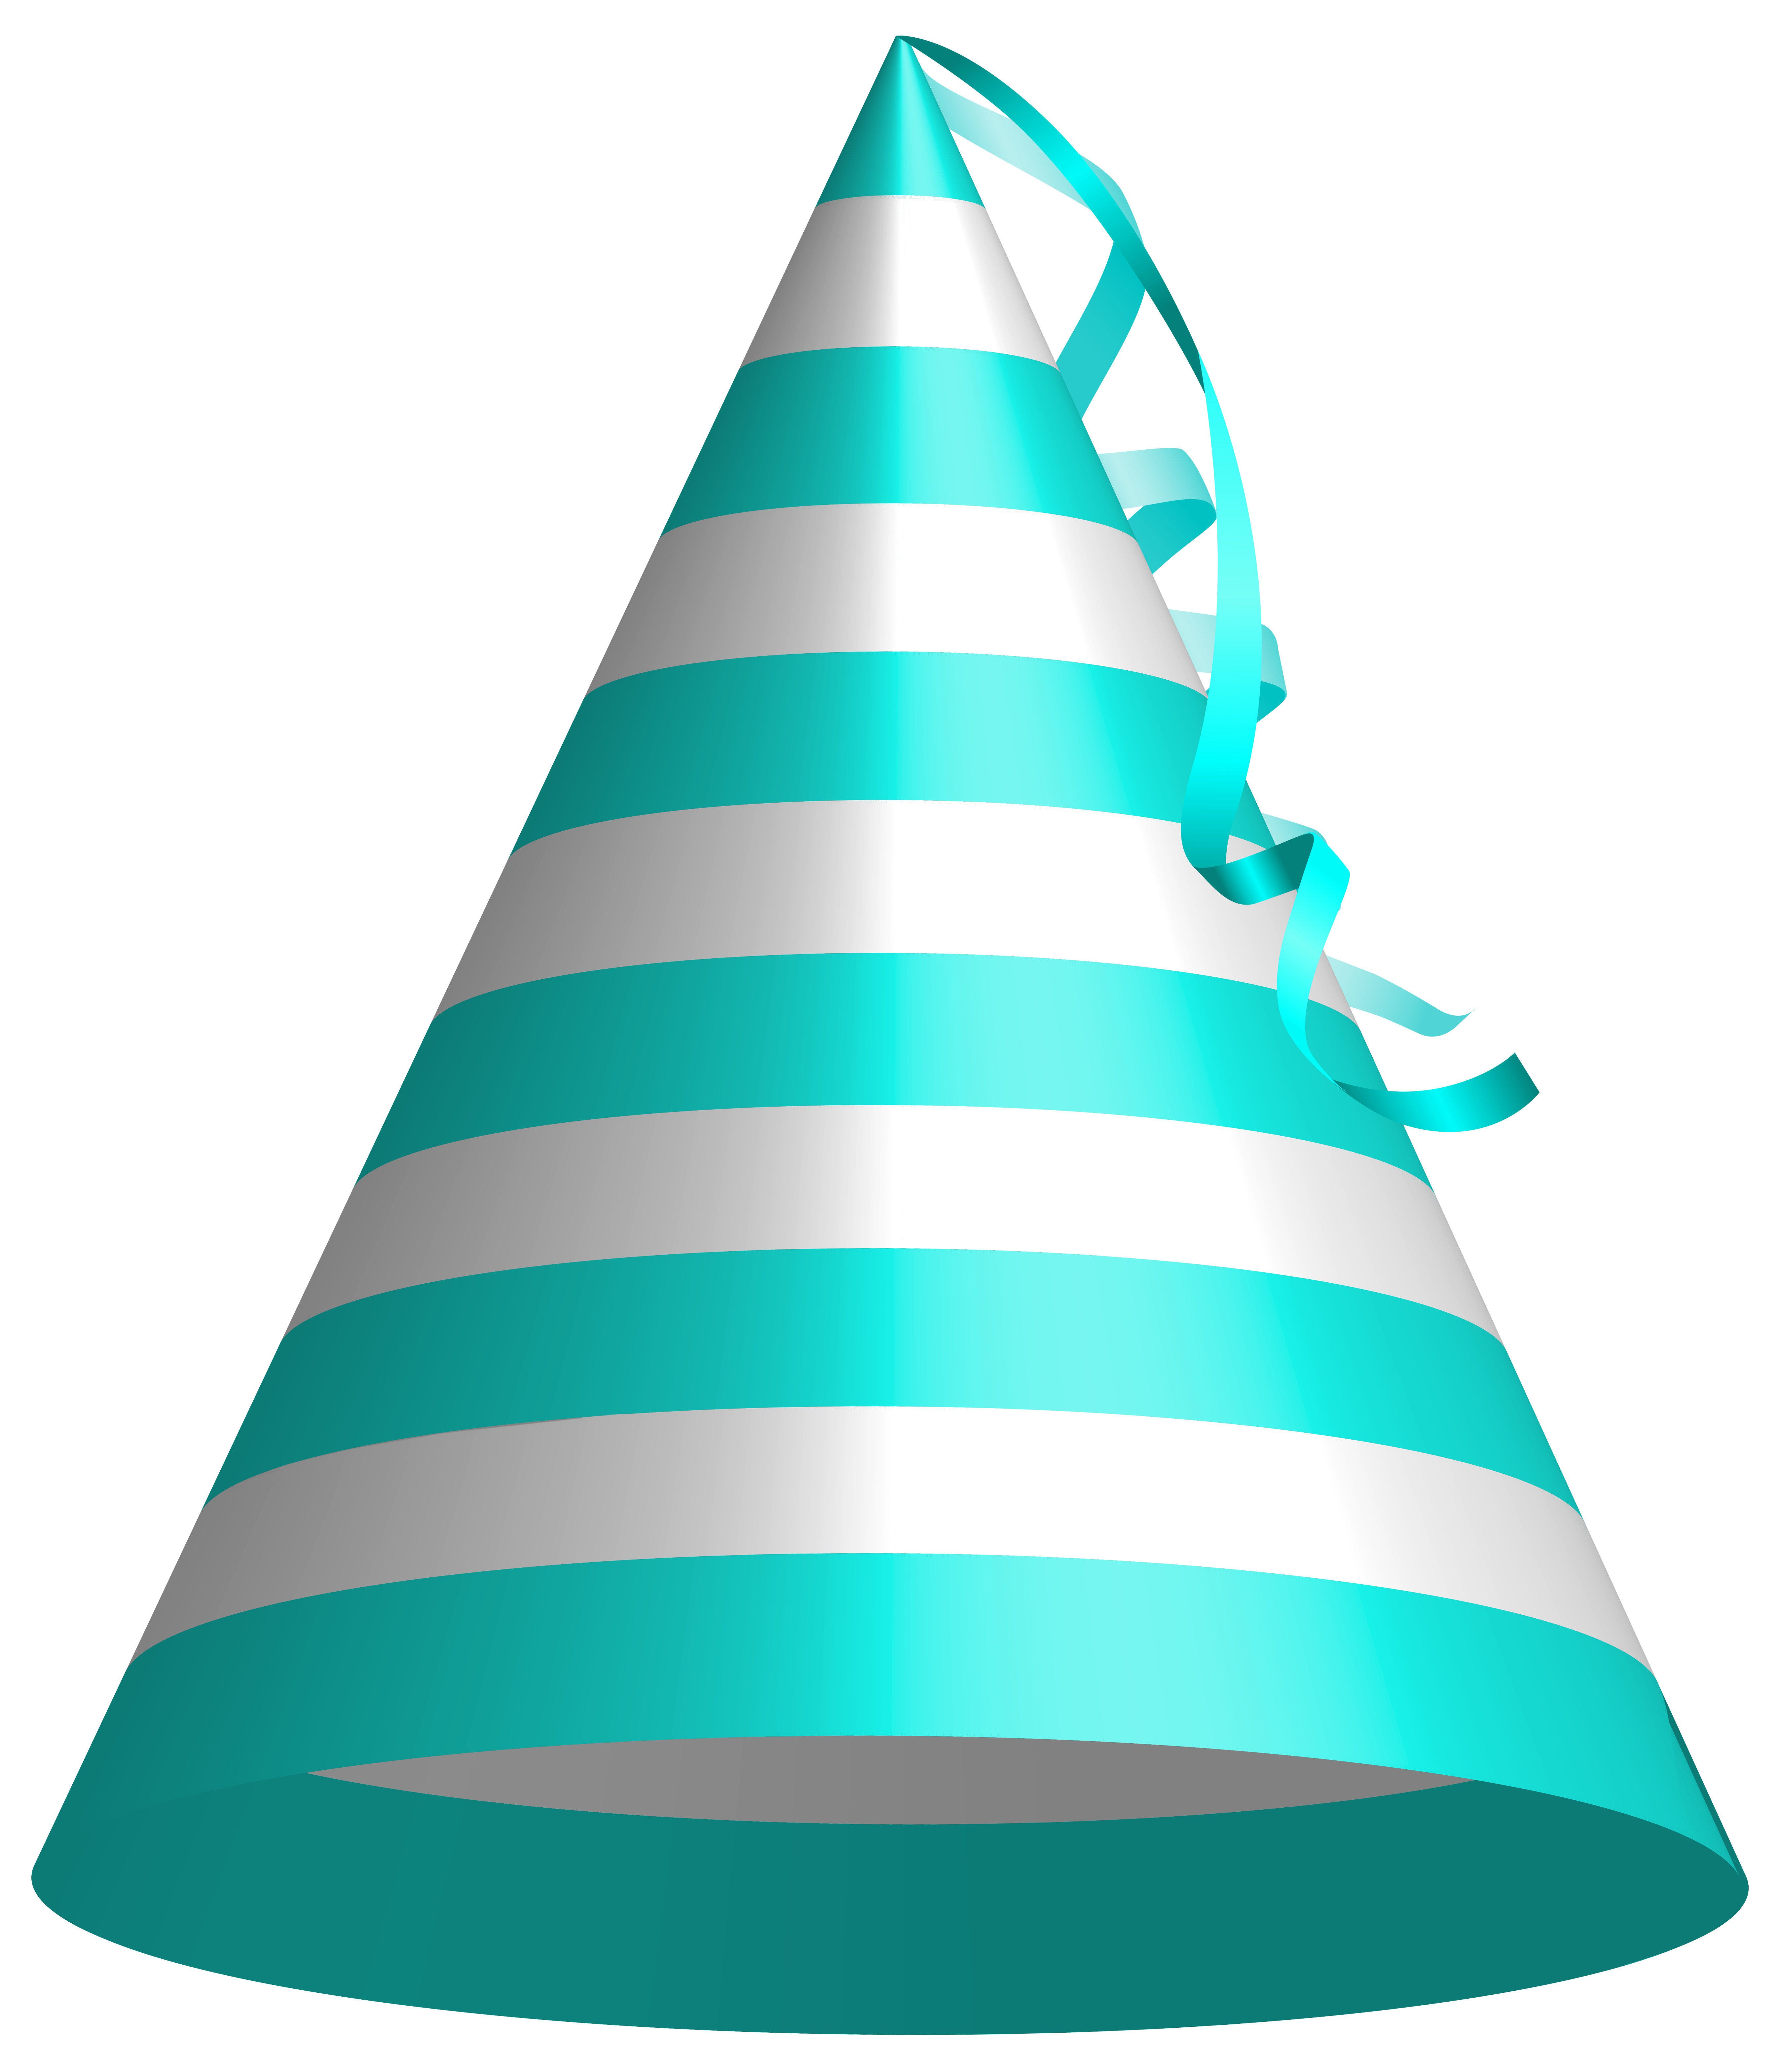 Plain party hat clipart purple transparent background vector black and white library Party Hat Clipart Transparent Background | Free download ... vector black and white library